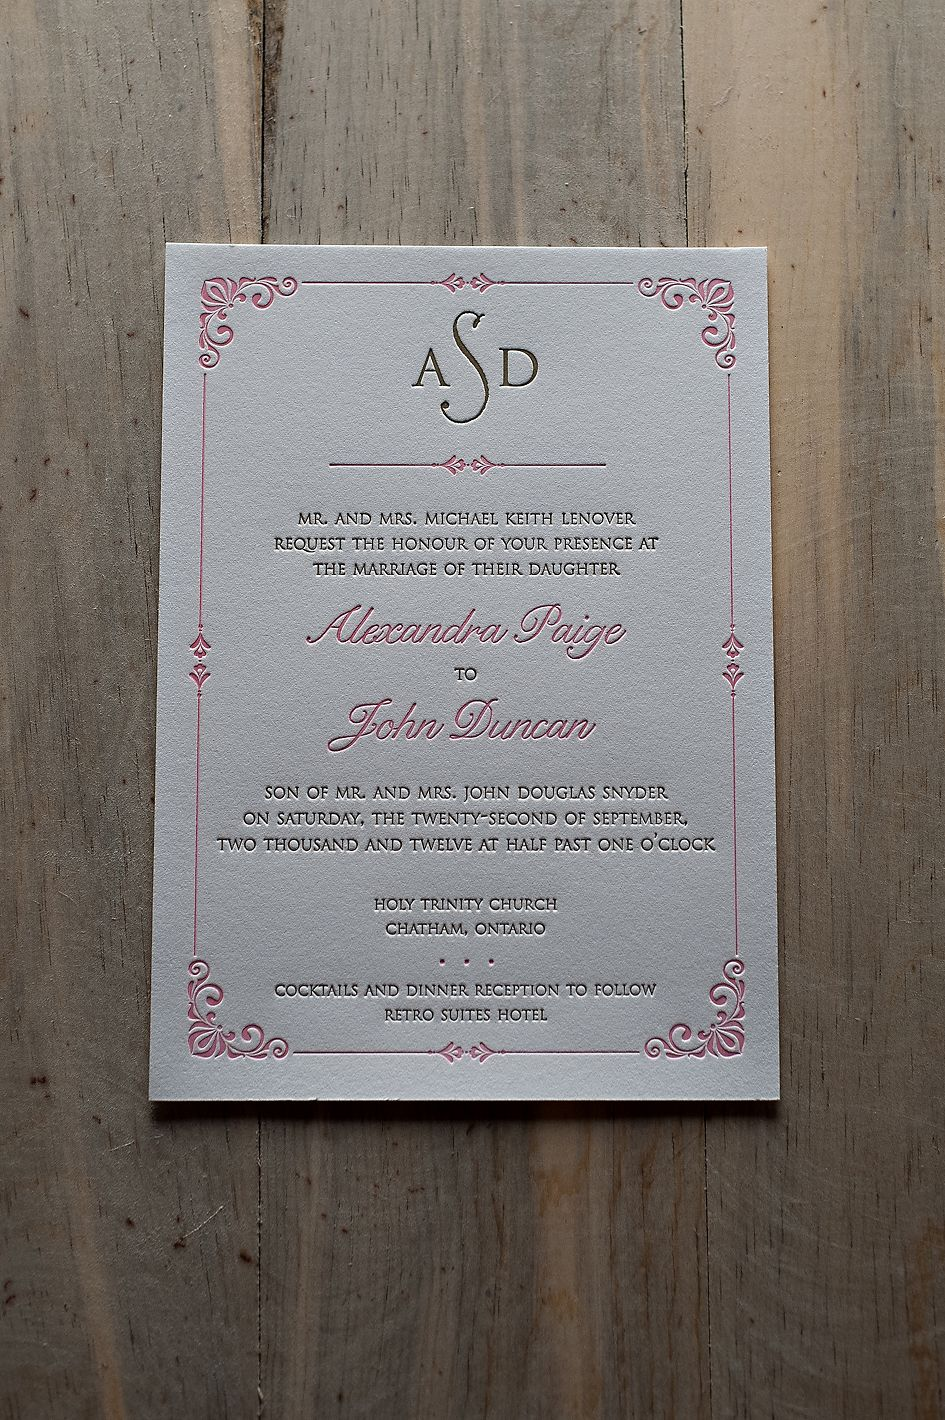 business event invitation templates%0A Royal Wedding Invitation  formal invitation wording  pink and gold wedding   letterpress wedding invitations